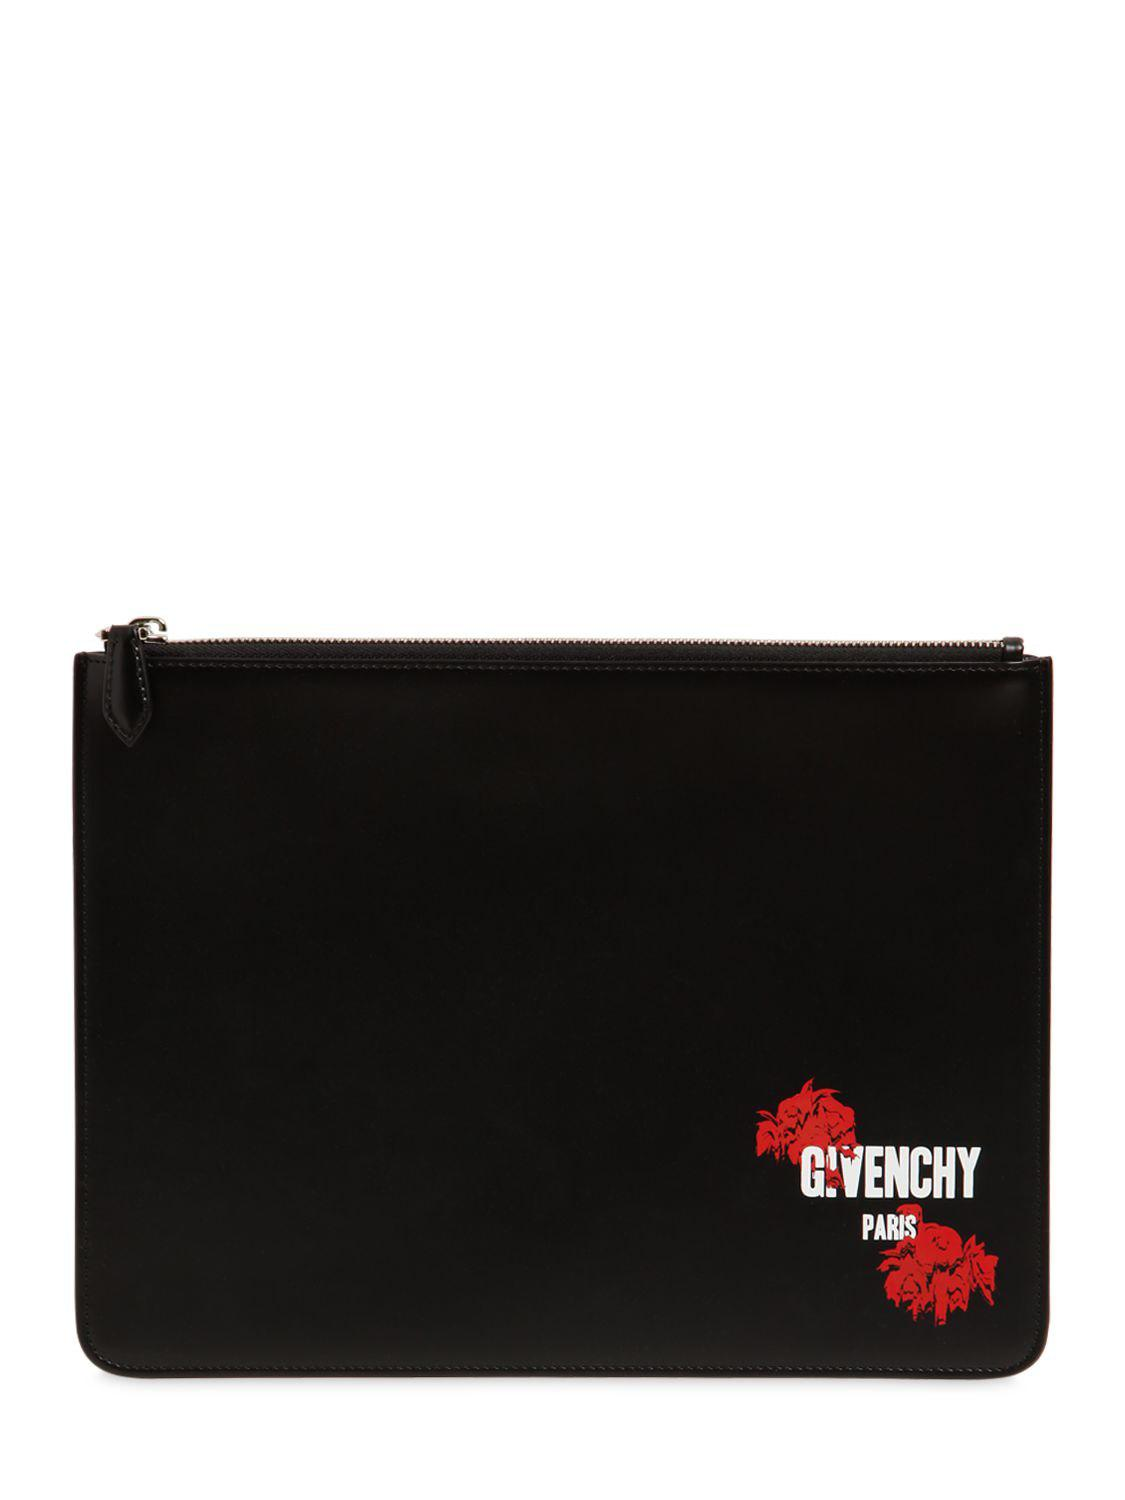 Givenchy LARGE RED FLOWERS GIVENCHY LEATHER POUCH pKQXzkKrp6